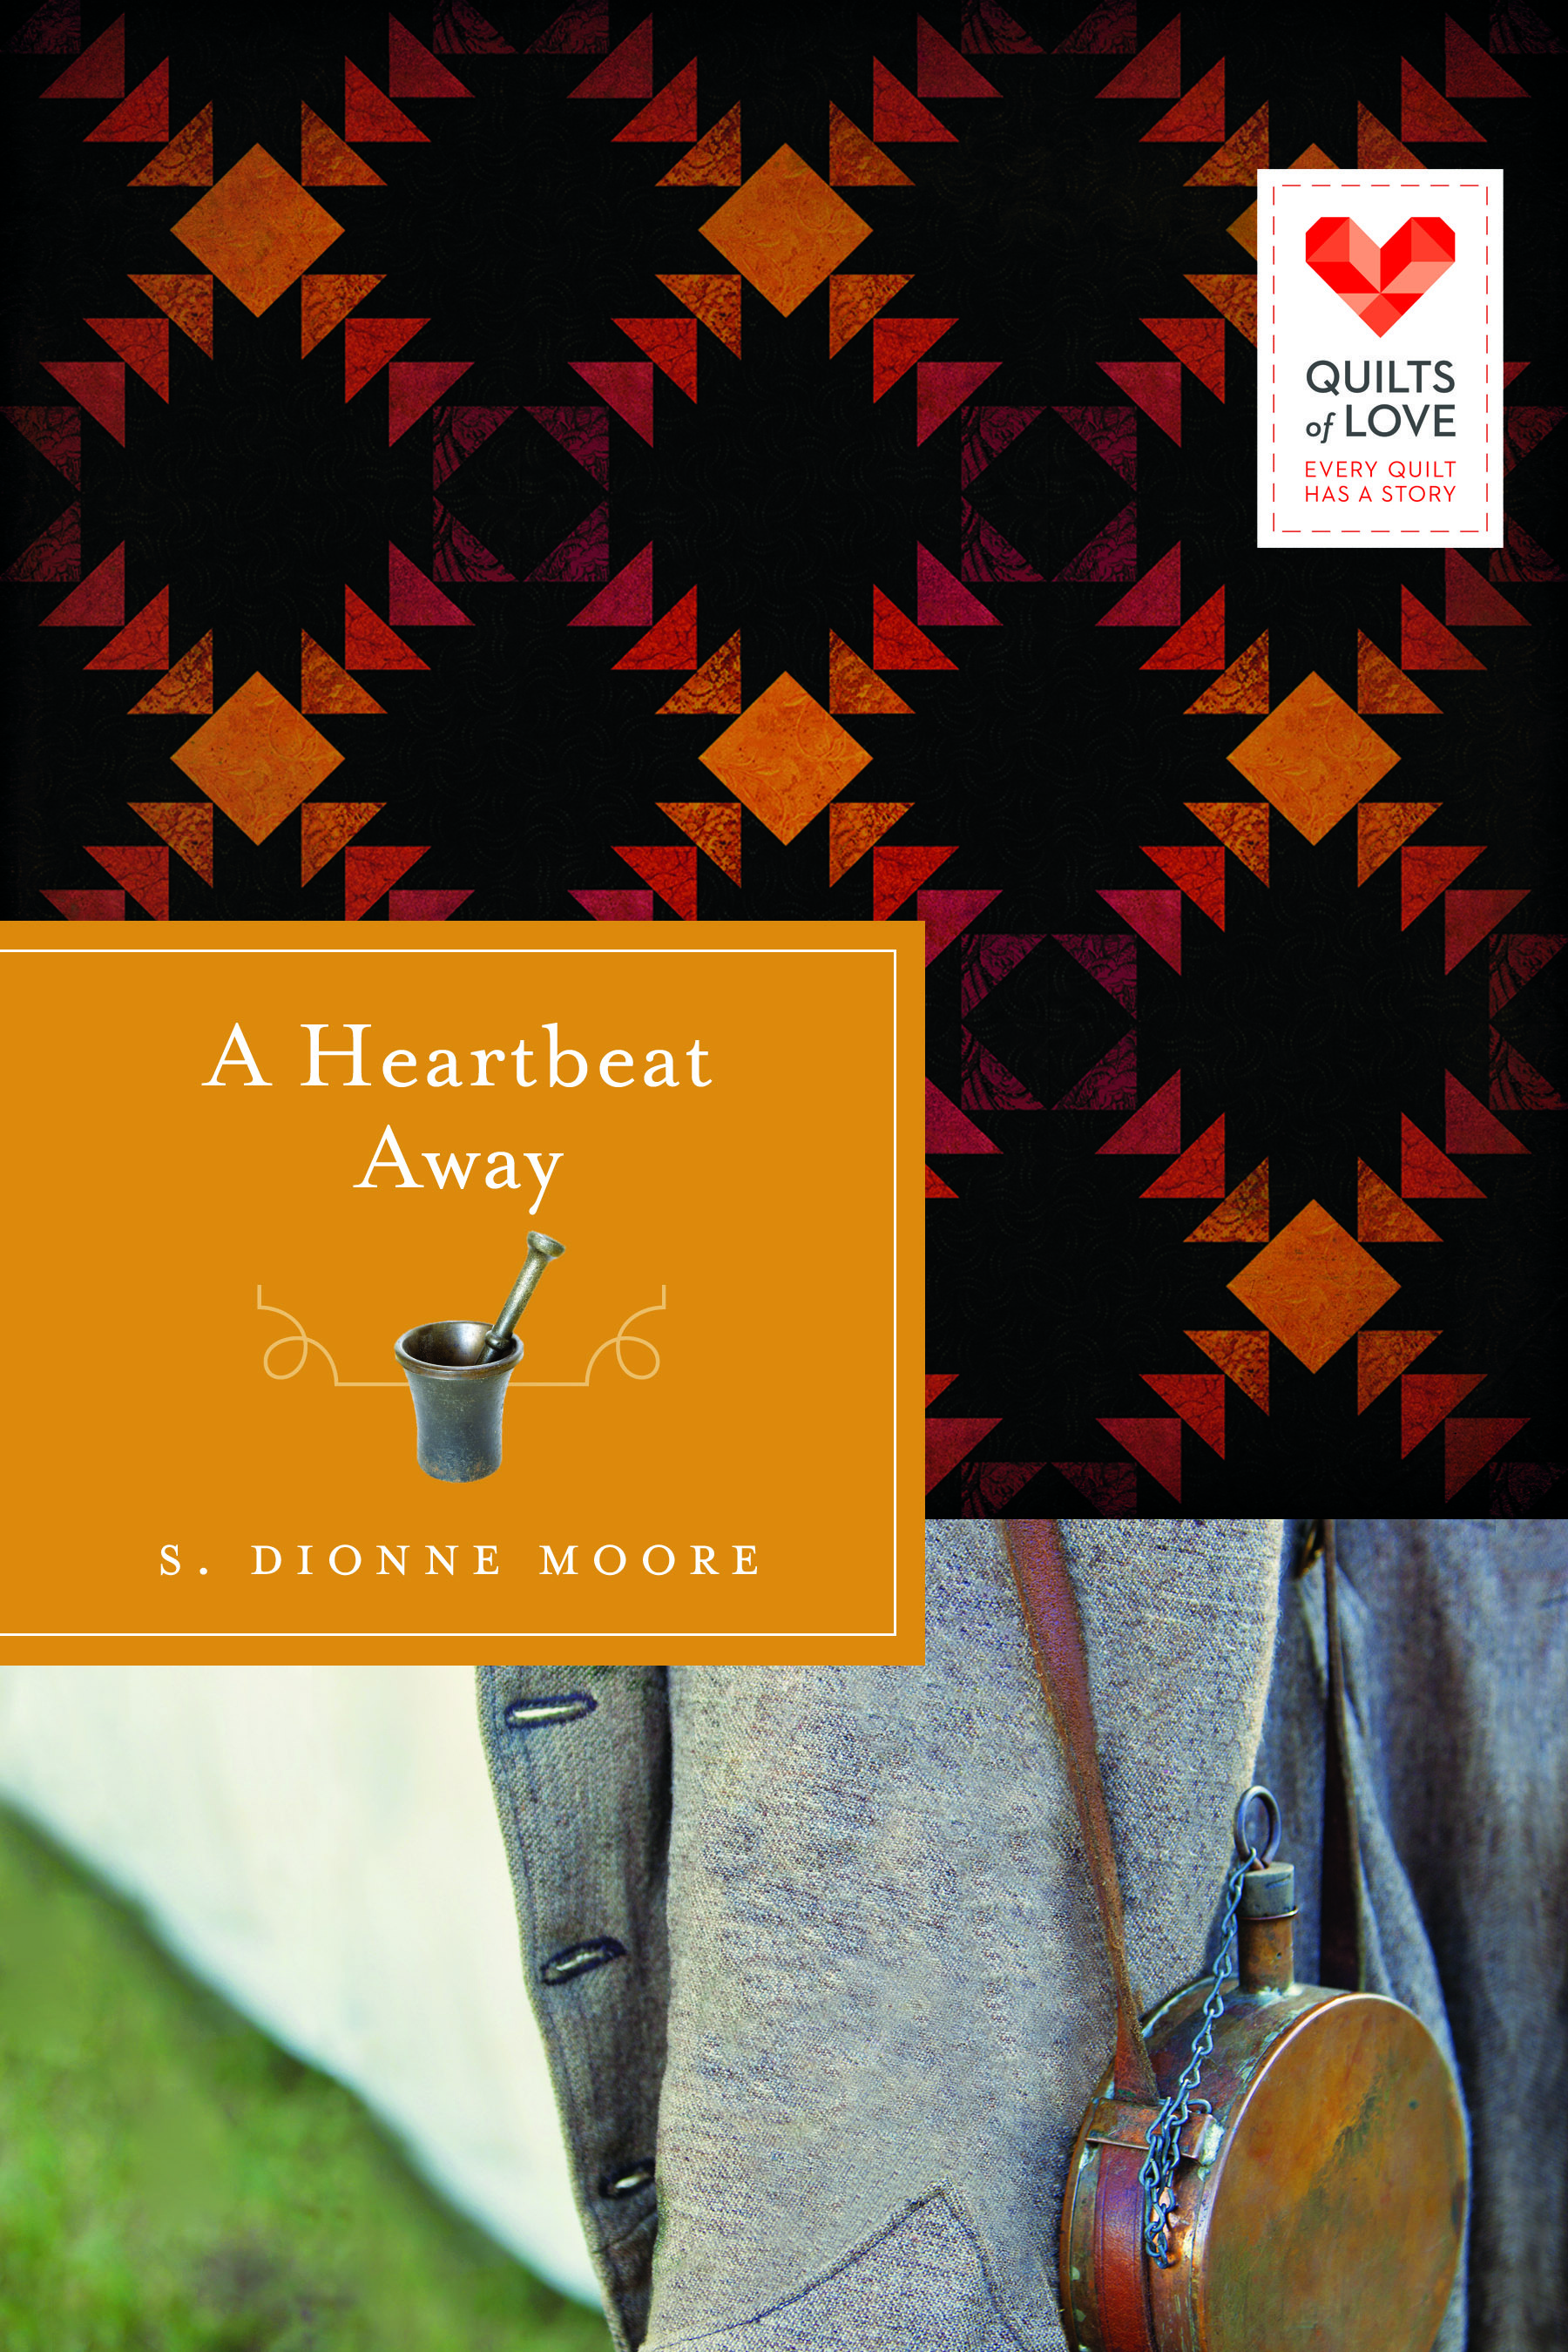 Trailer: A Heartbeat Away, S. Dionne Moore | S....